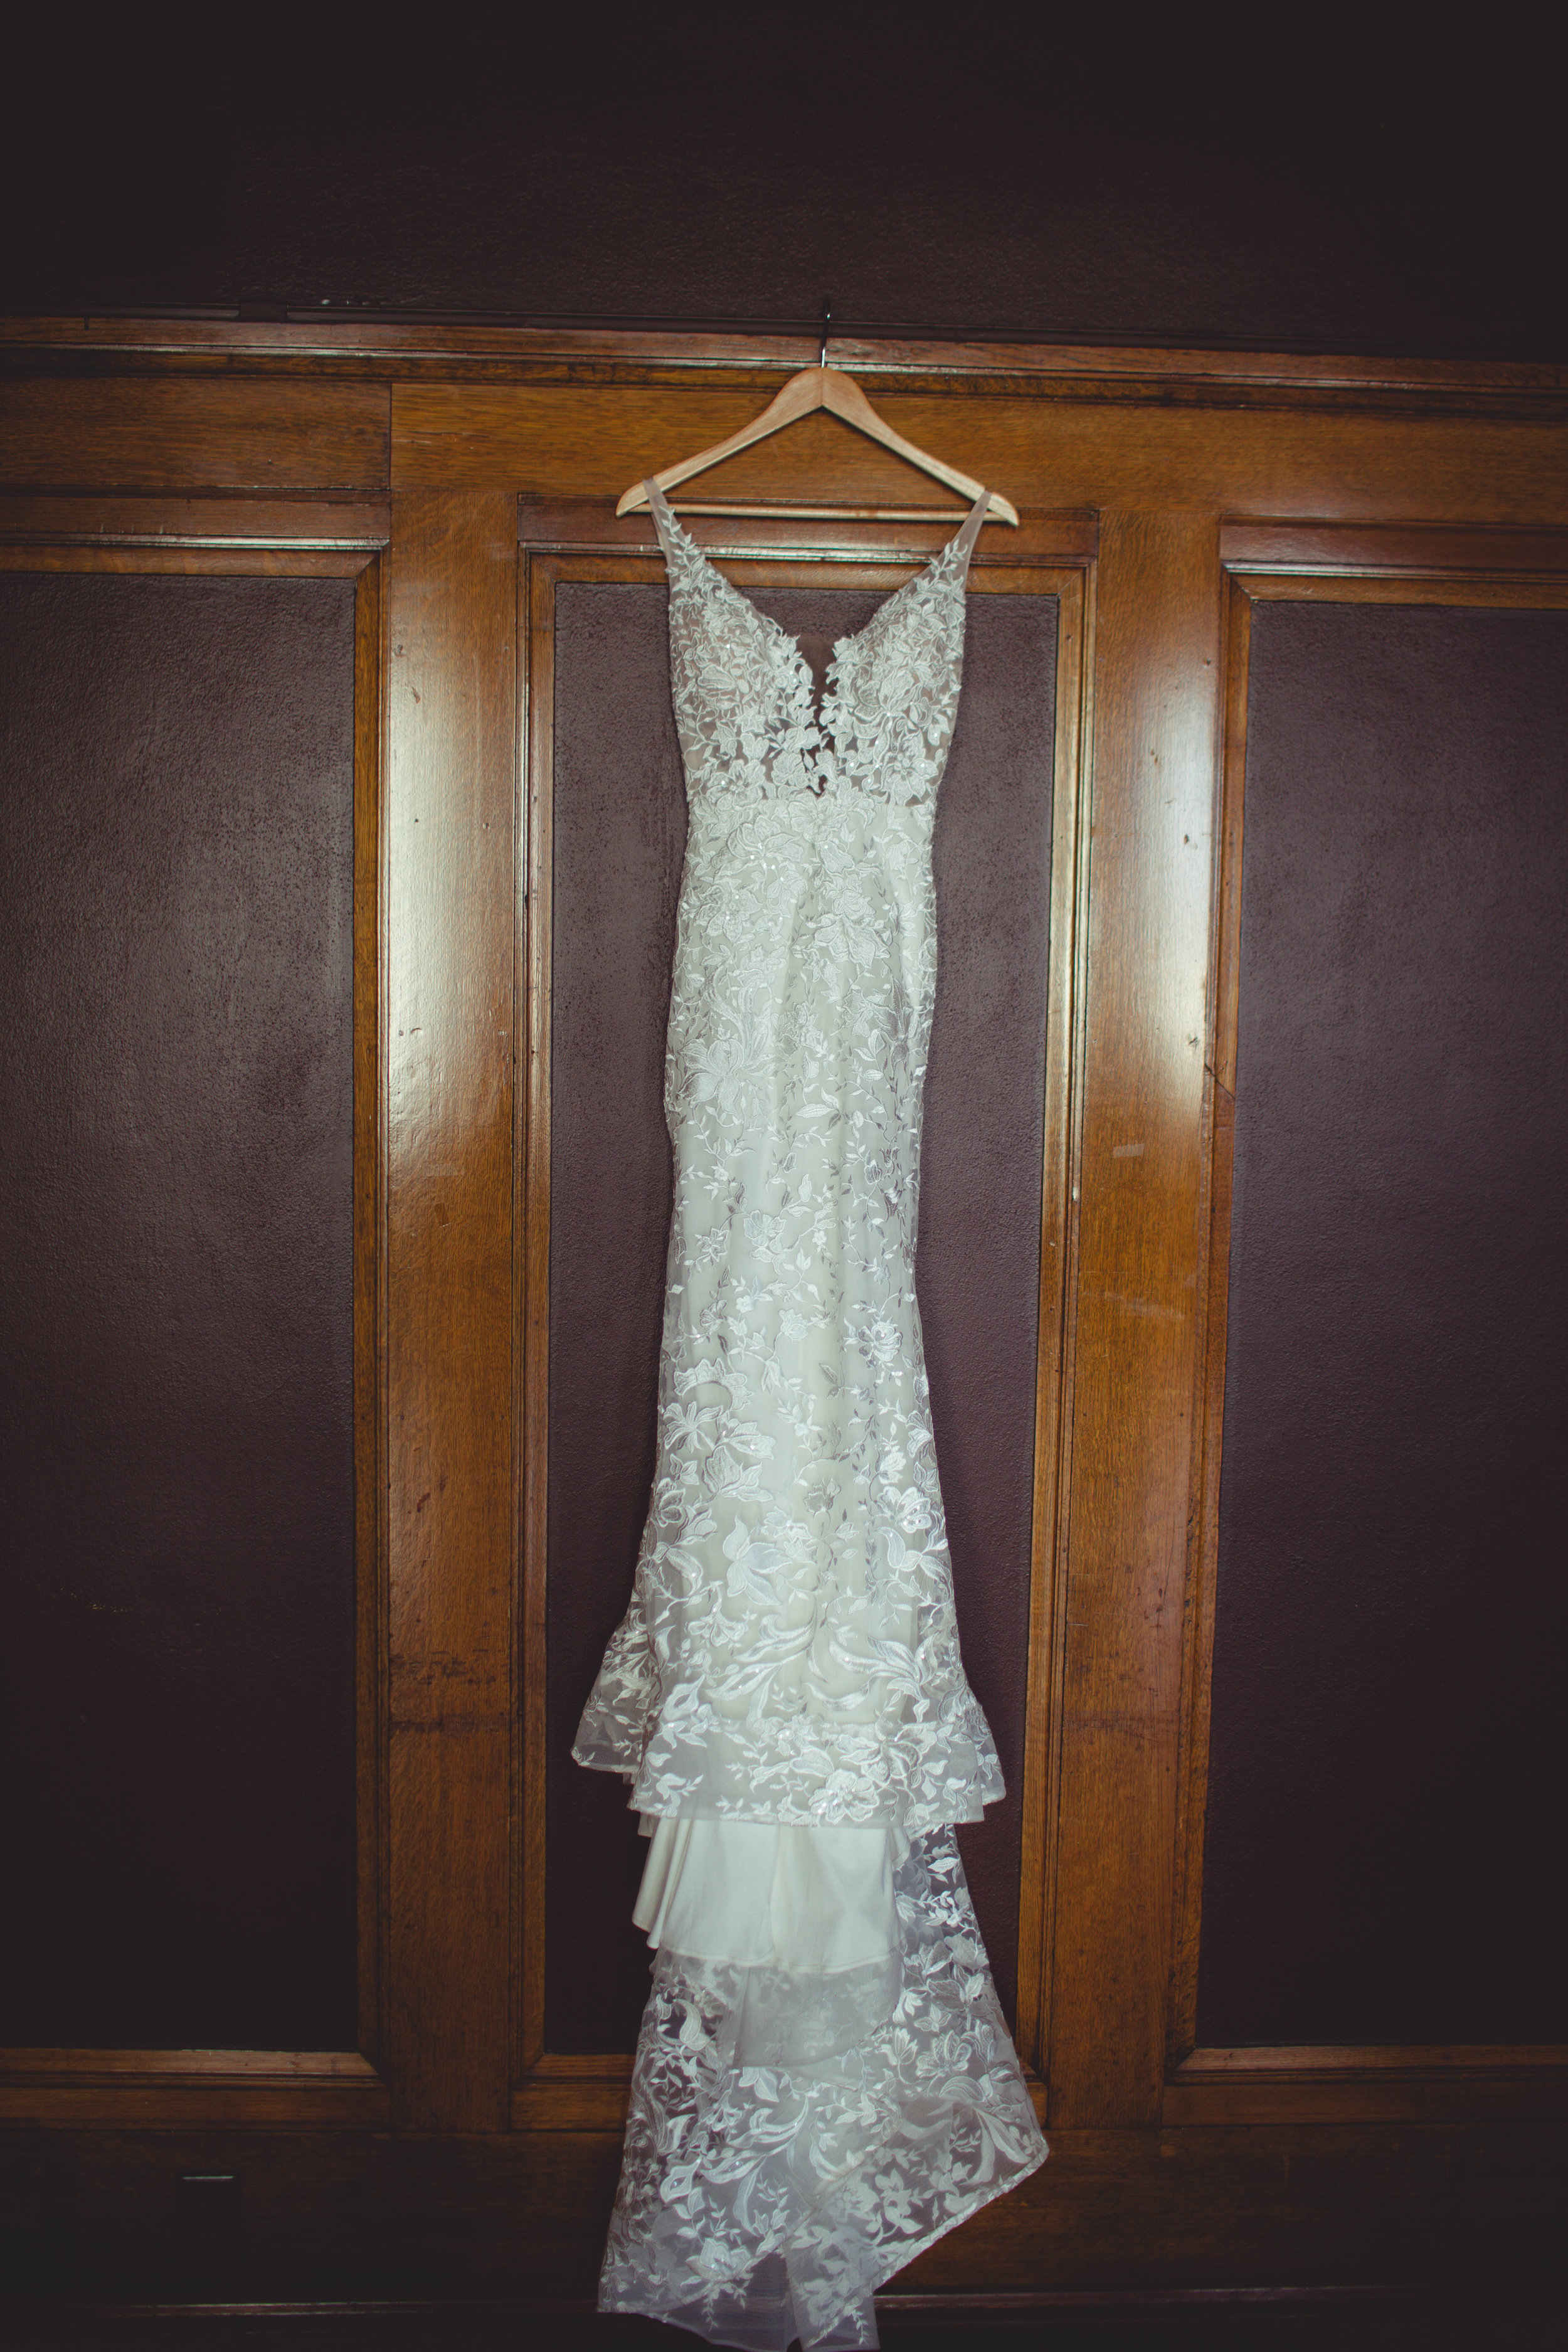 hanging wedding dress bride spokane